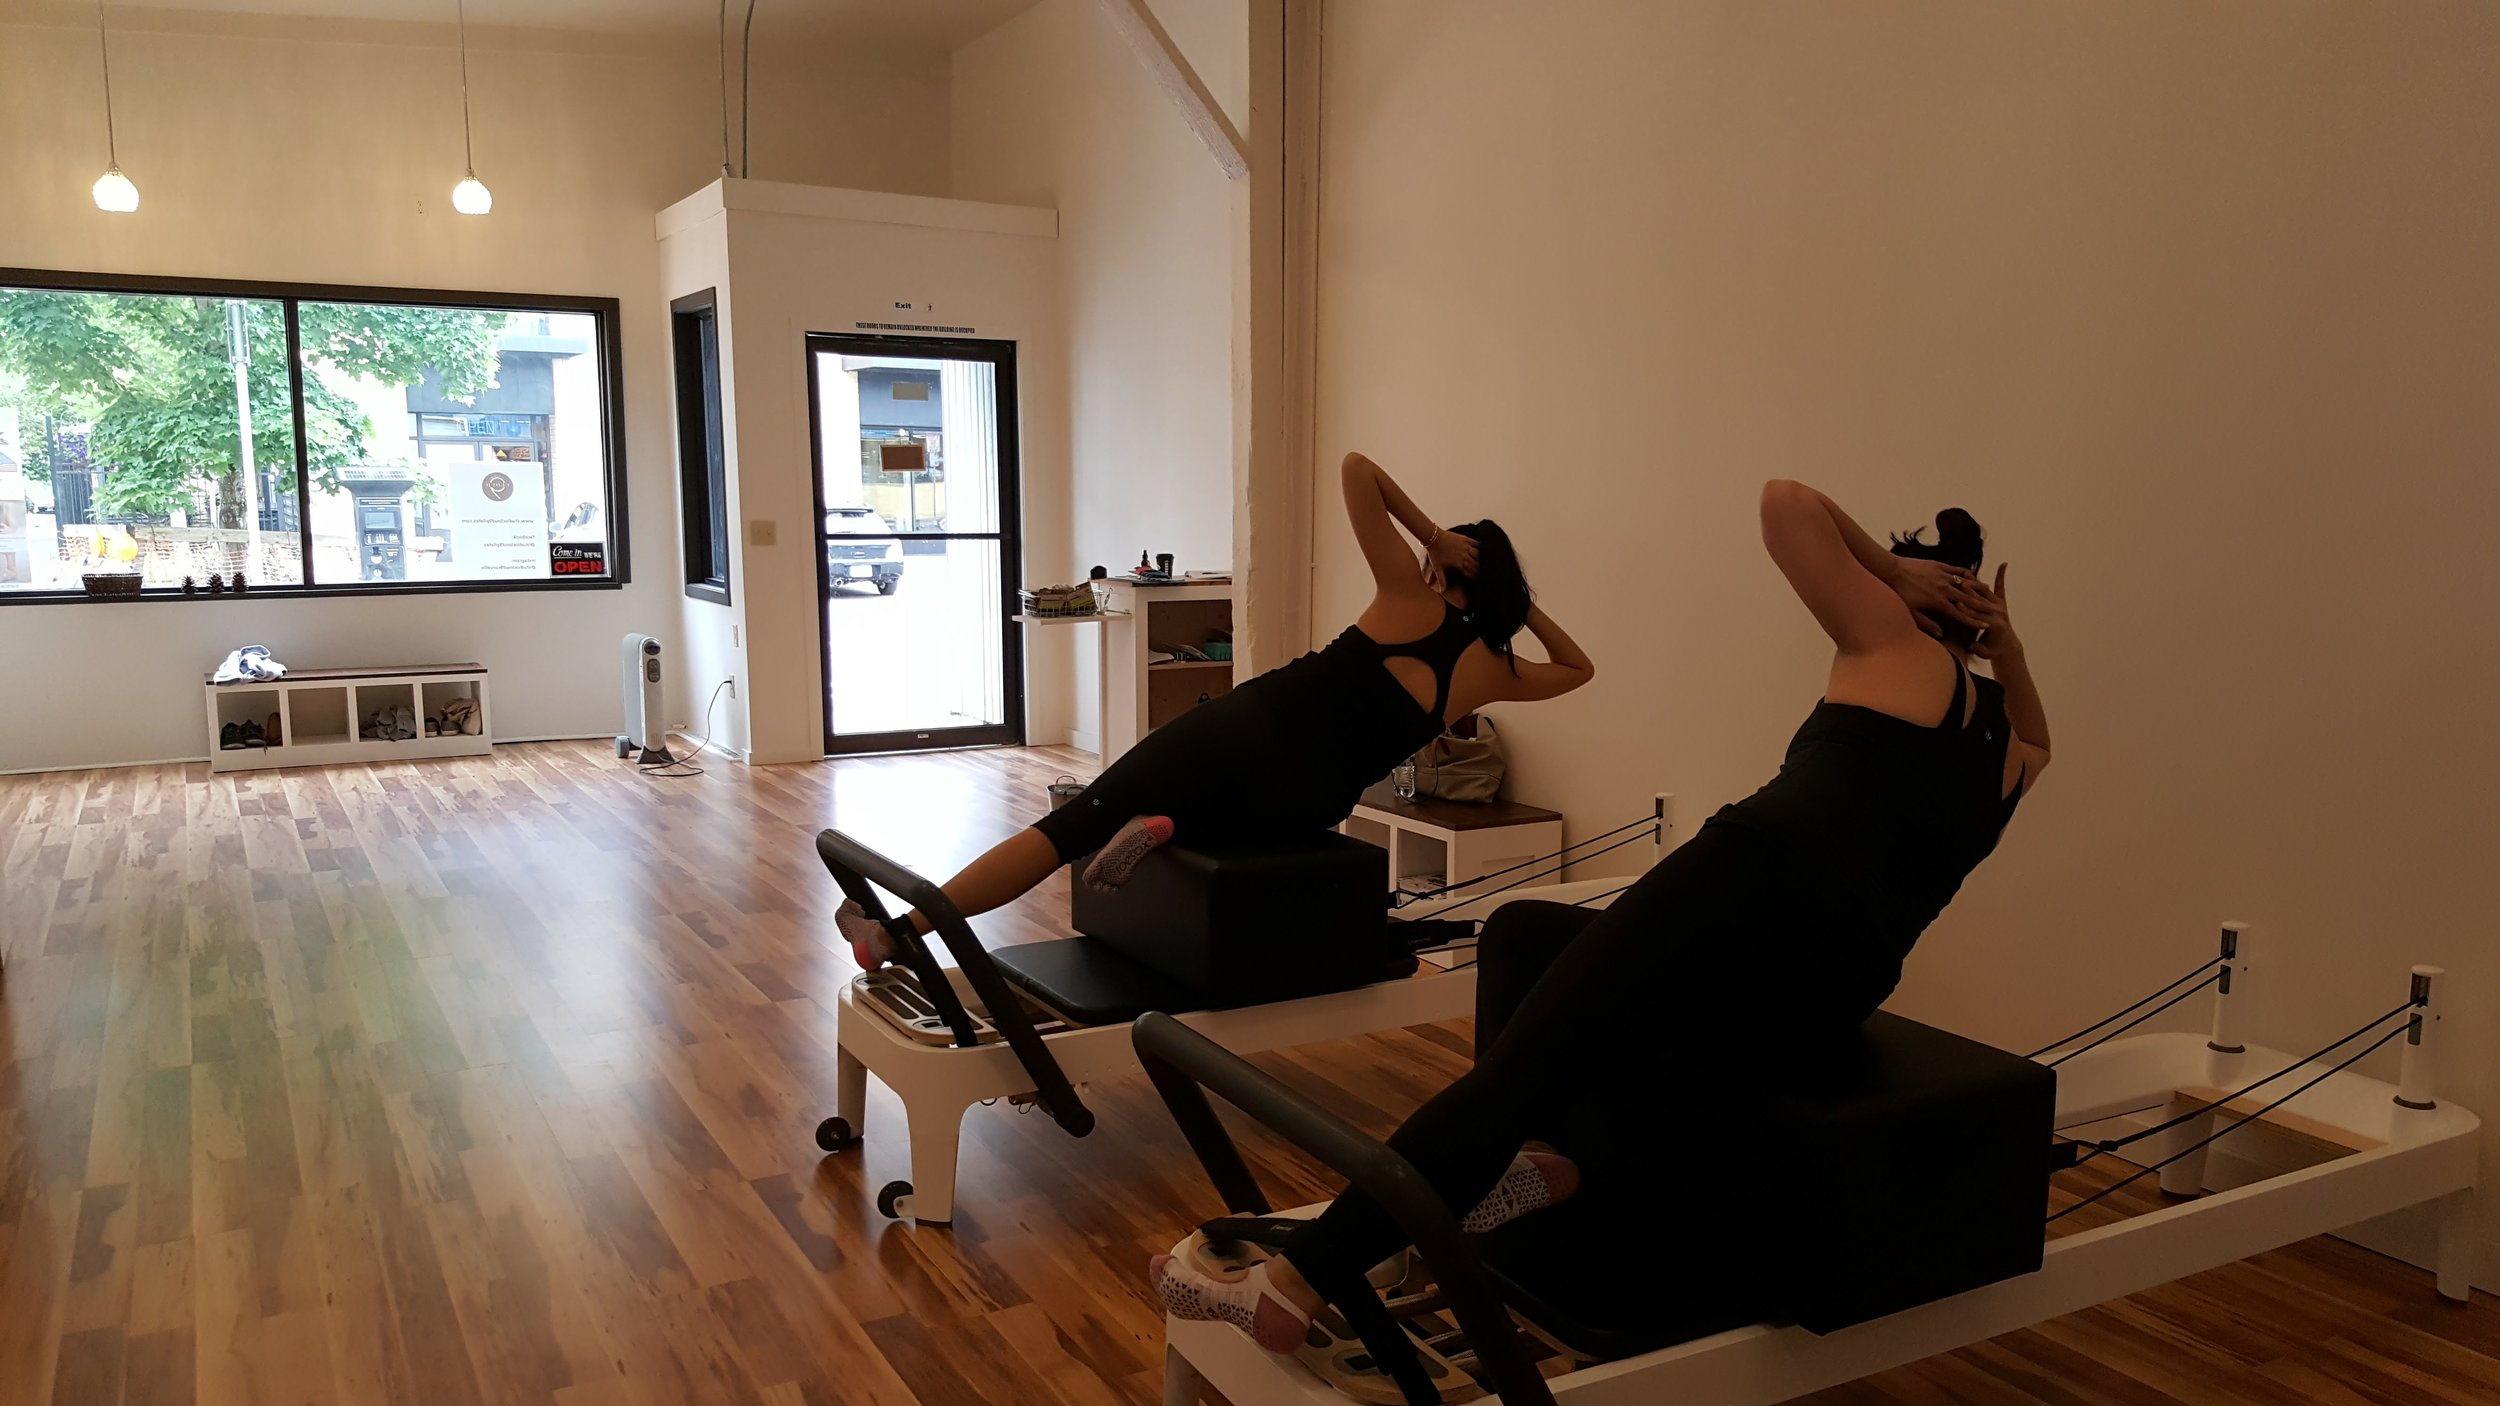 Look for my upcoming article on the benefits of Reformer exercises in USA Today/ The Asbury Park Press